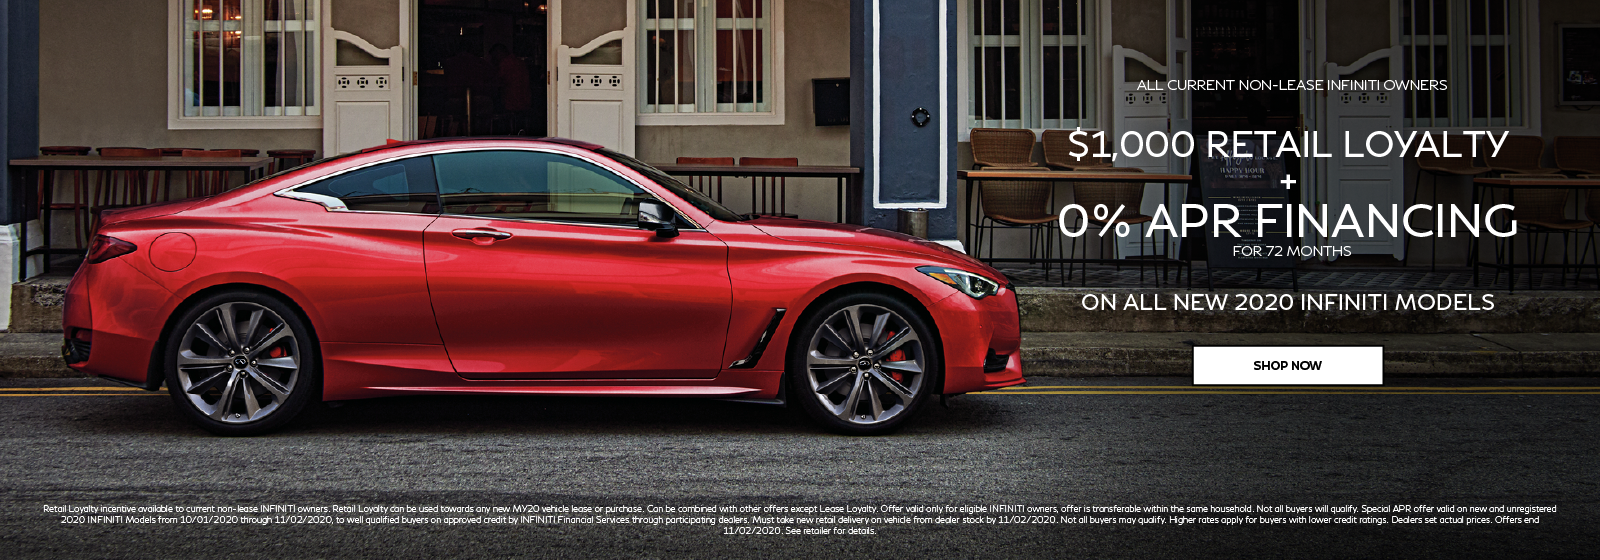 $1,000 Retail Loyalty + 0% APR financing for 72 months on all new 2020 INFINITI models. Click to shop now.